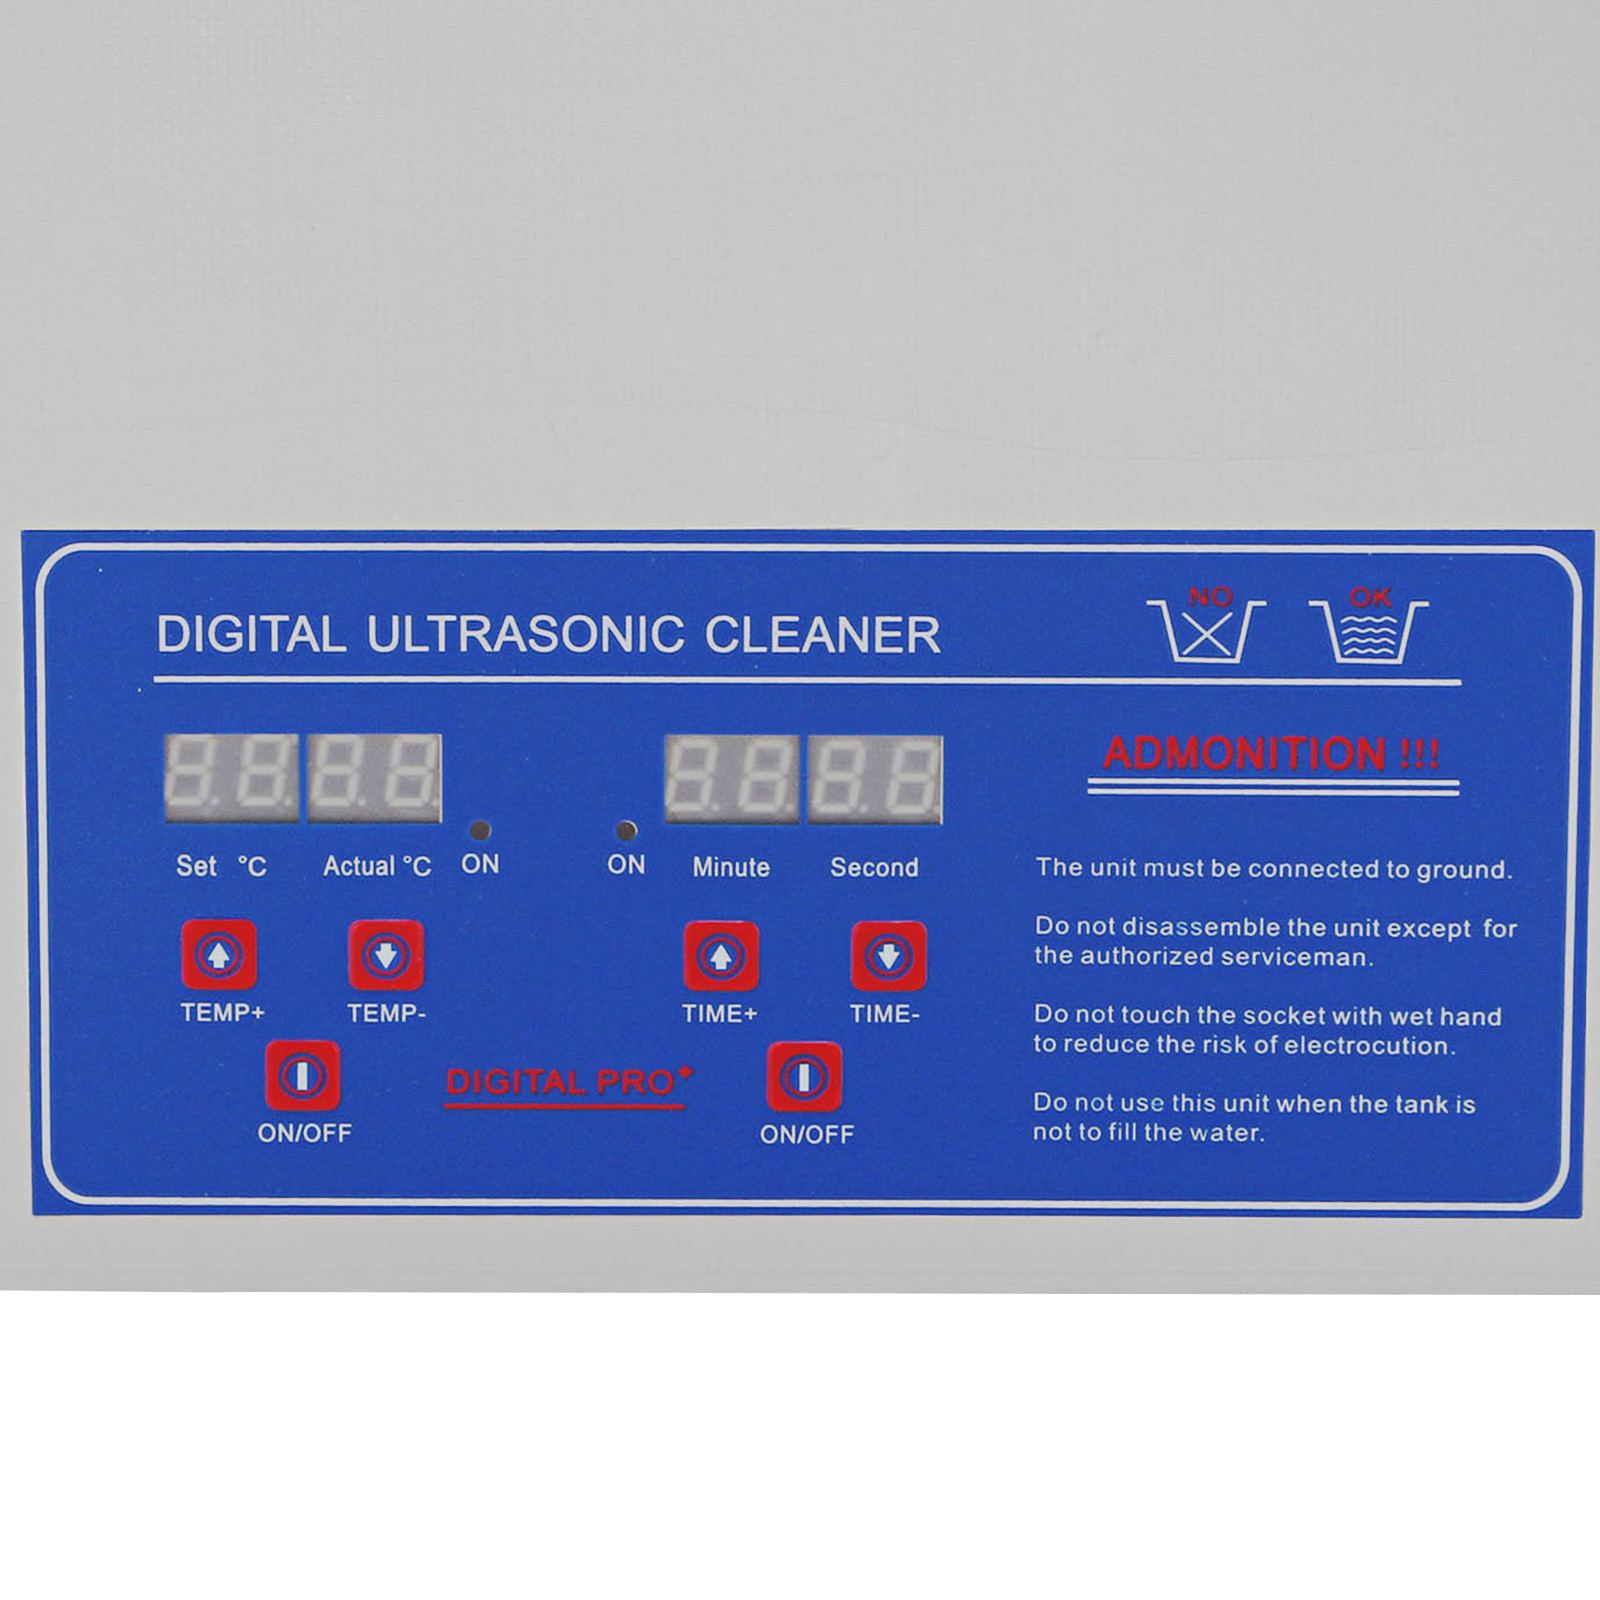 Multi-Ultrasonic-Cleaner-Supplies-Jewelry-1-3-2L-3L-6L-10L-15L-22L-30L thumbnail 92